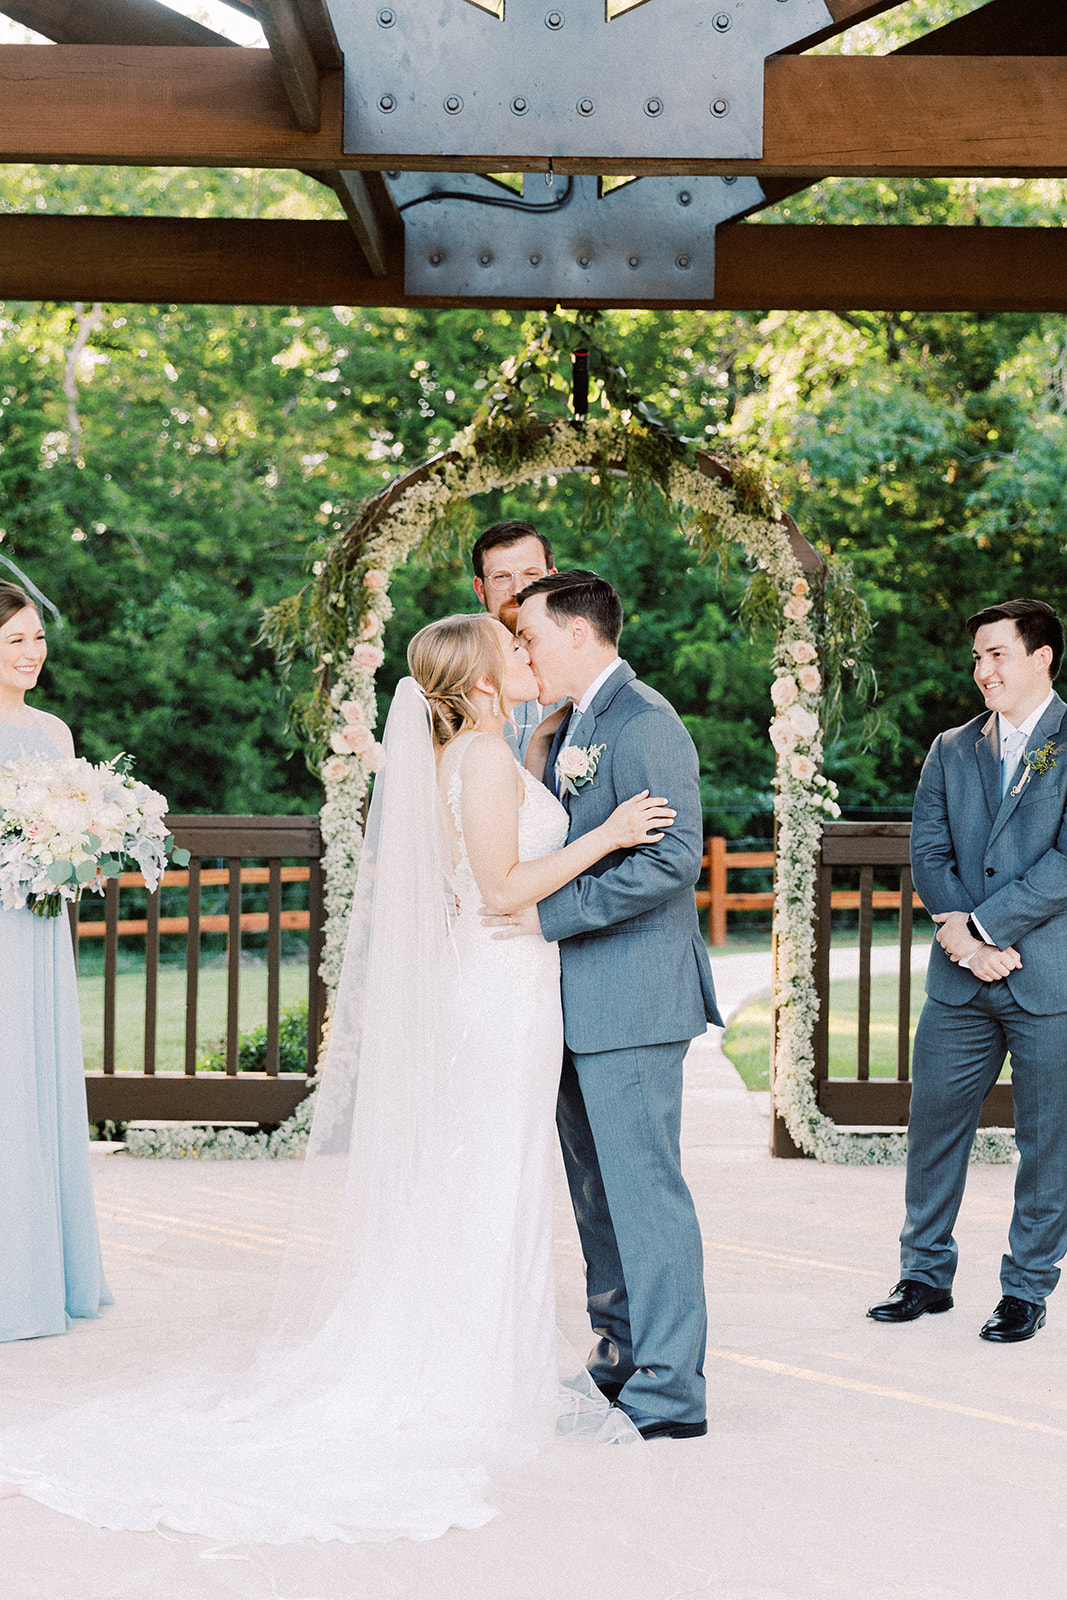 Lockharts wedding photography: | Romantic blue Texas wedding at Spring Venue by Alexa Kay Events